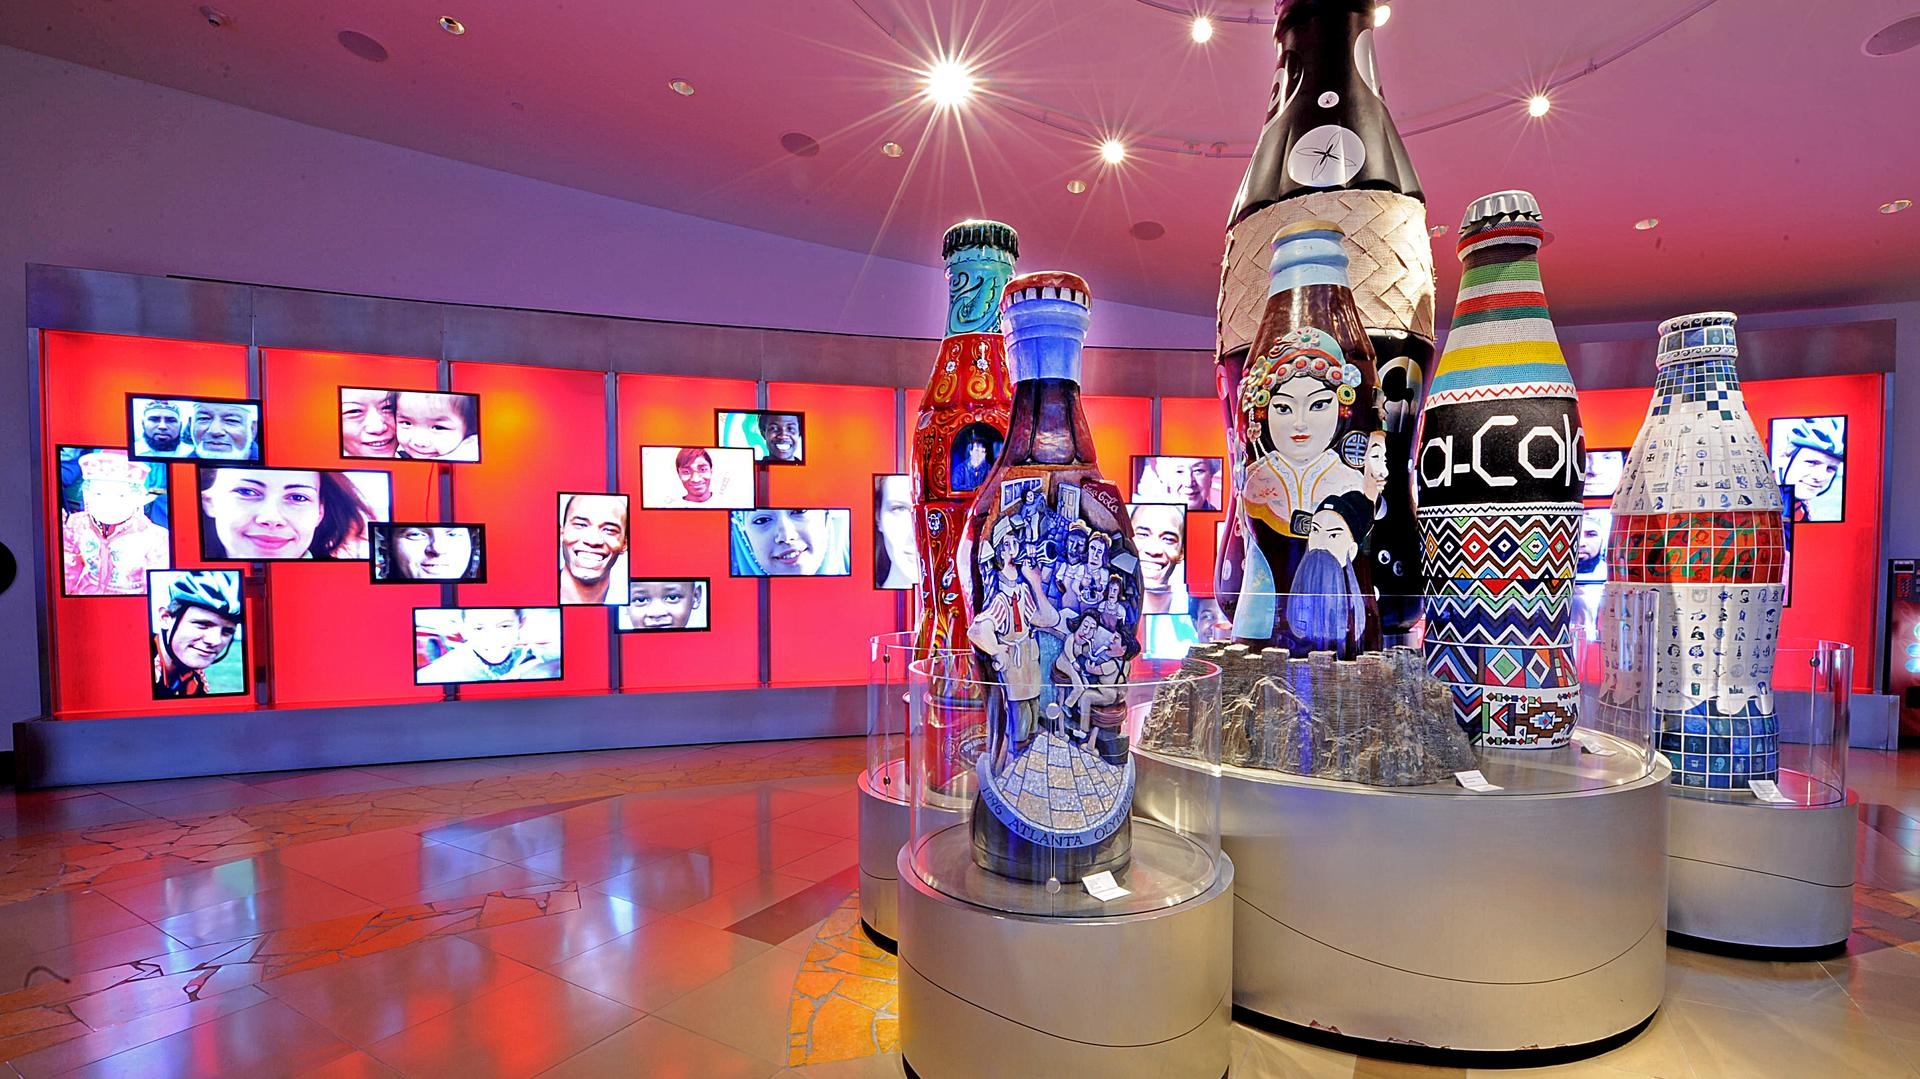 space at The World of Coca Cola